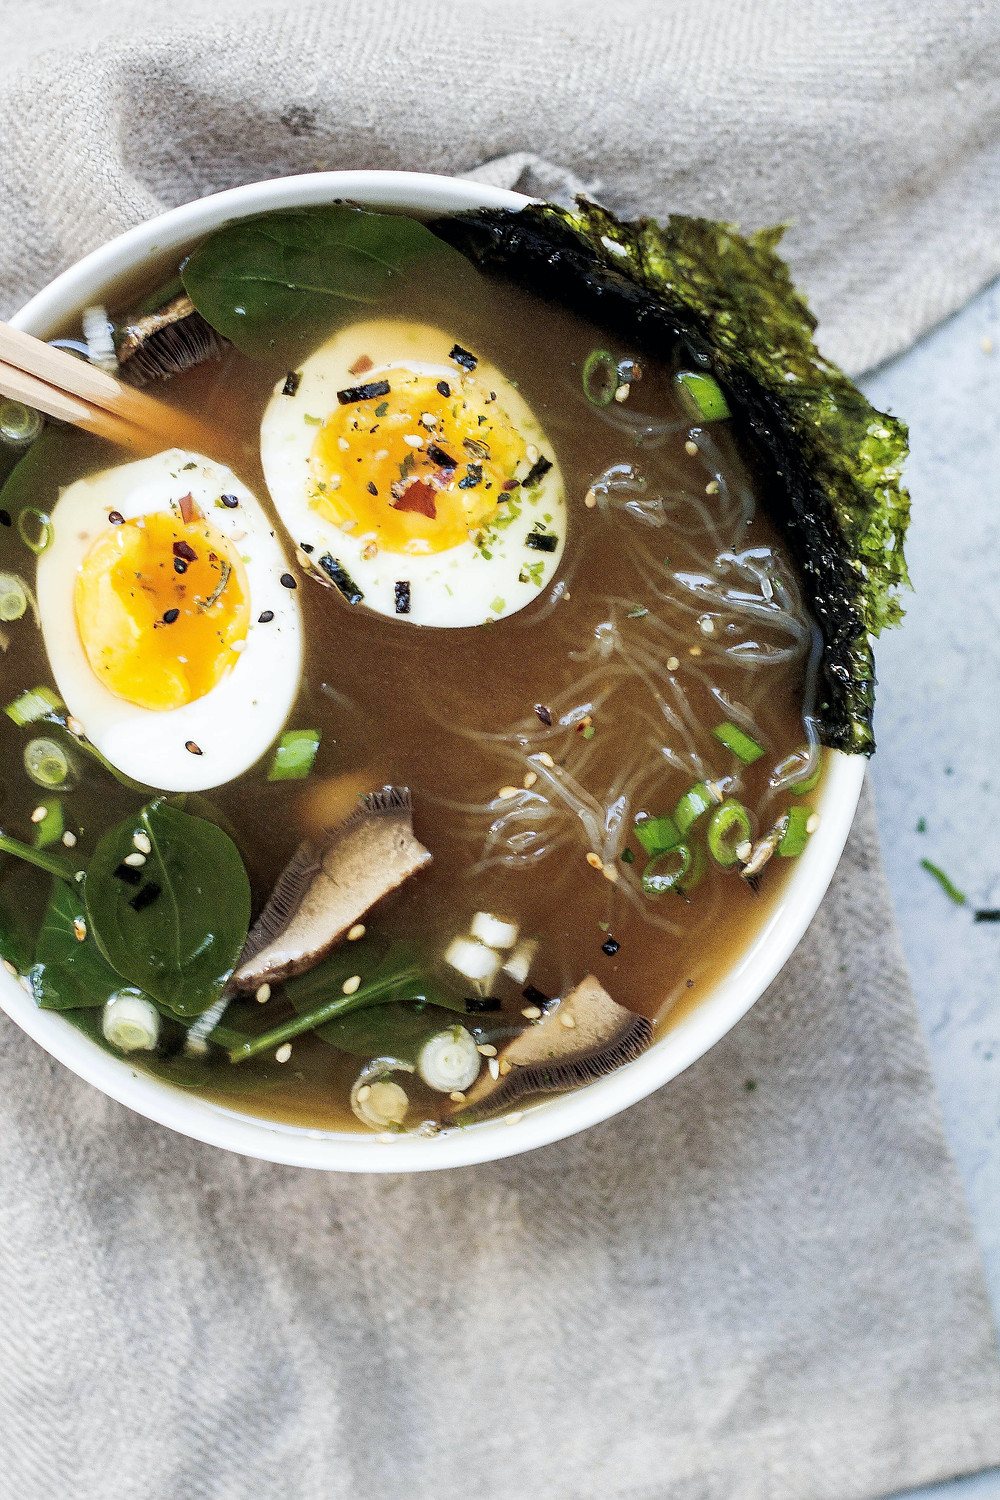 Bowl of ramen with egg and vegetables